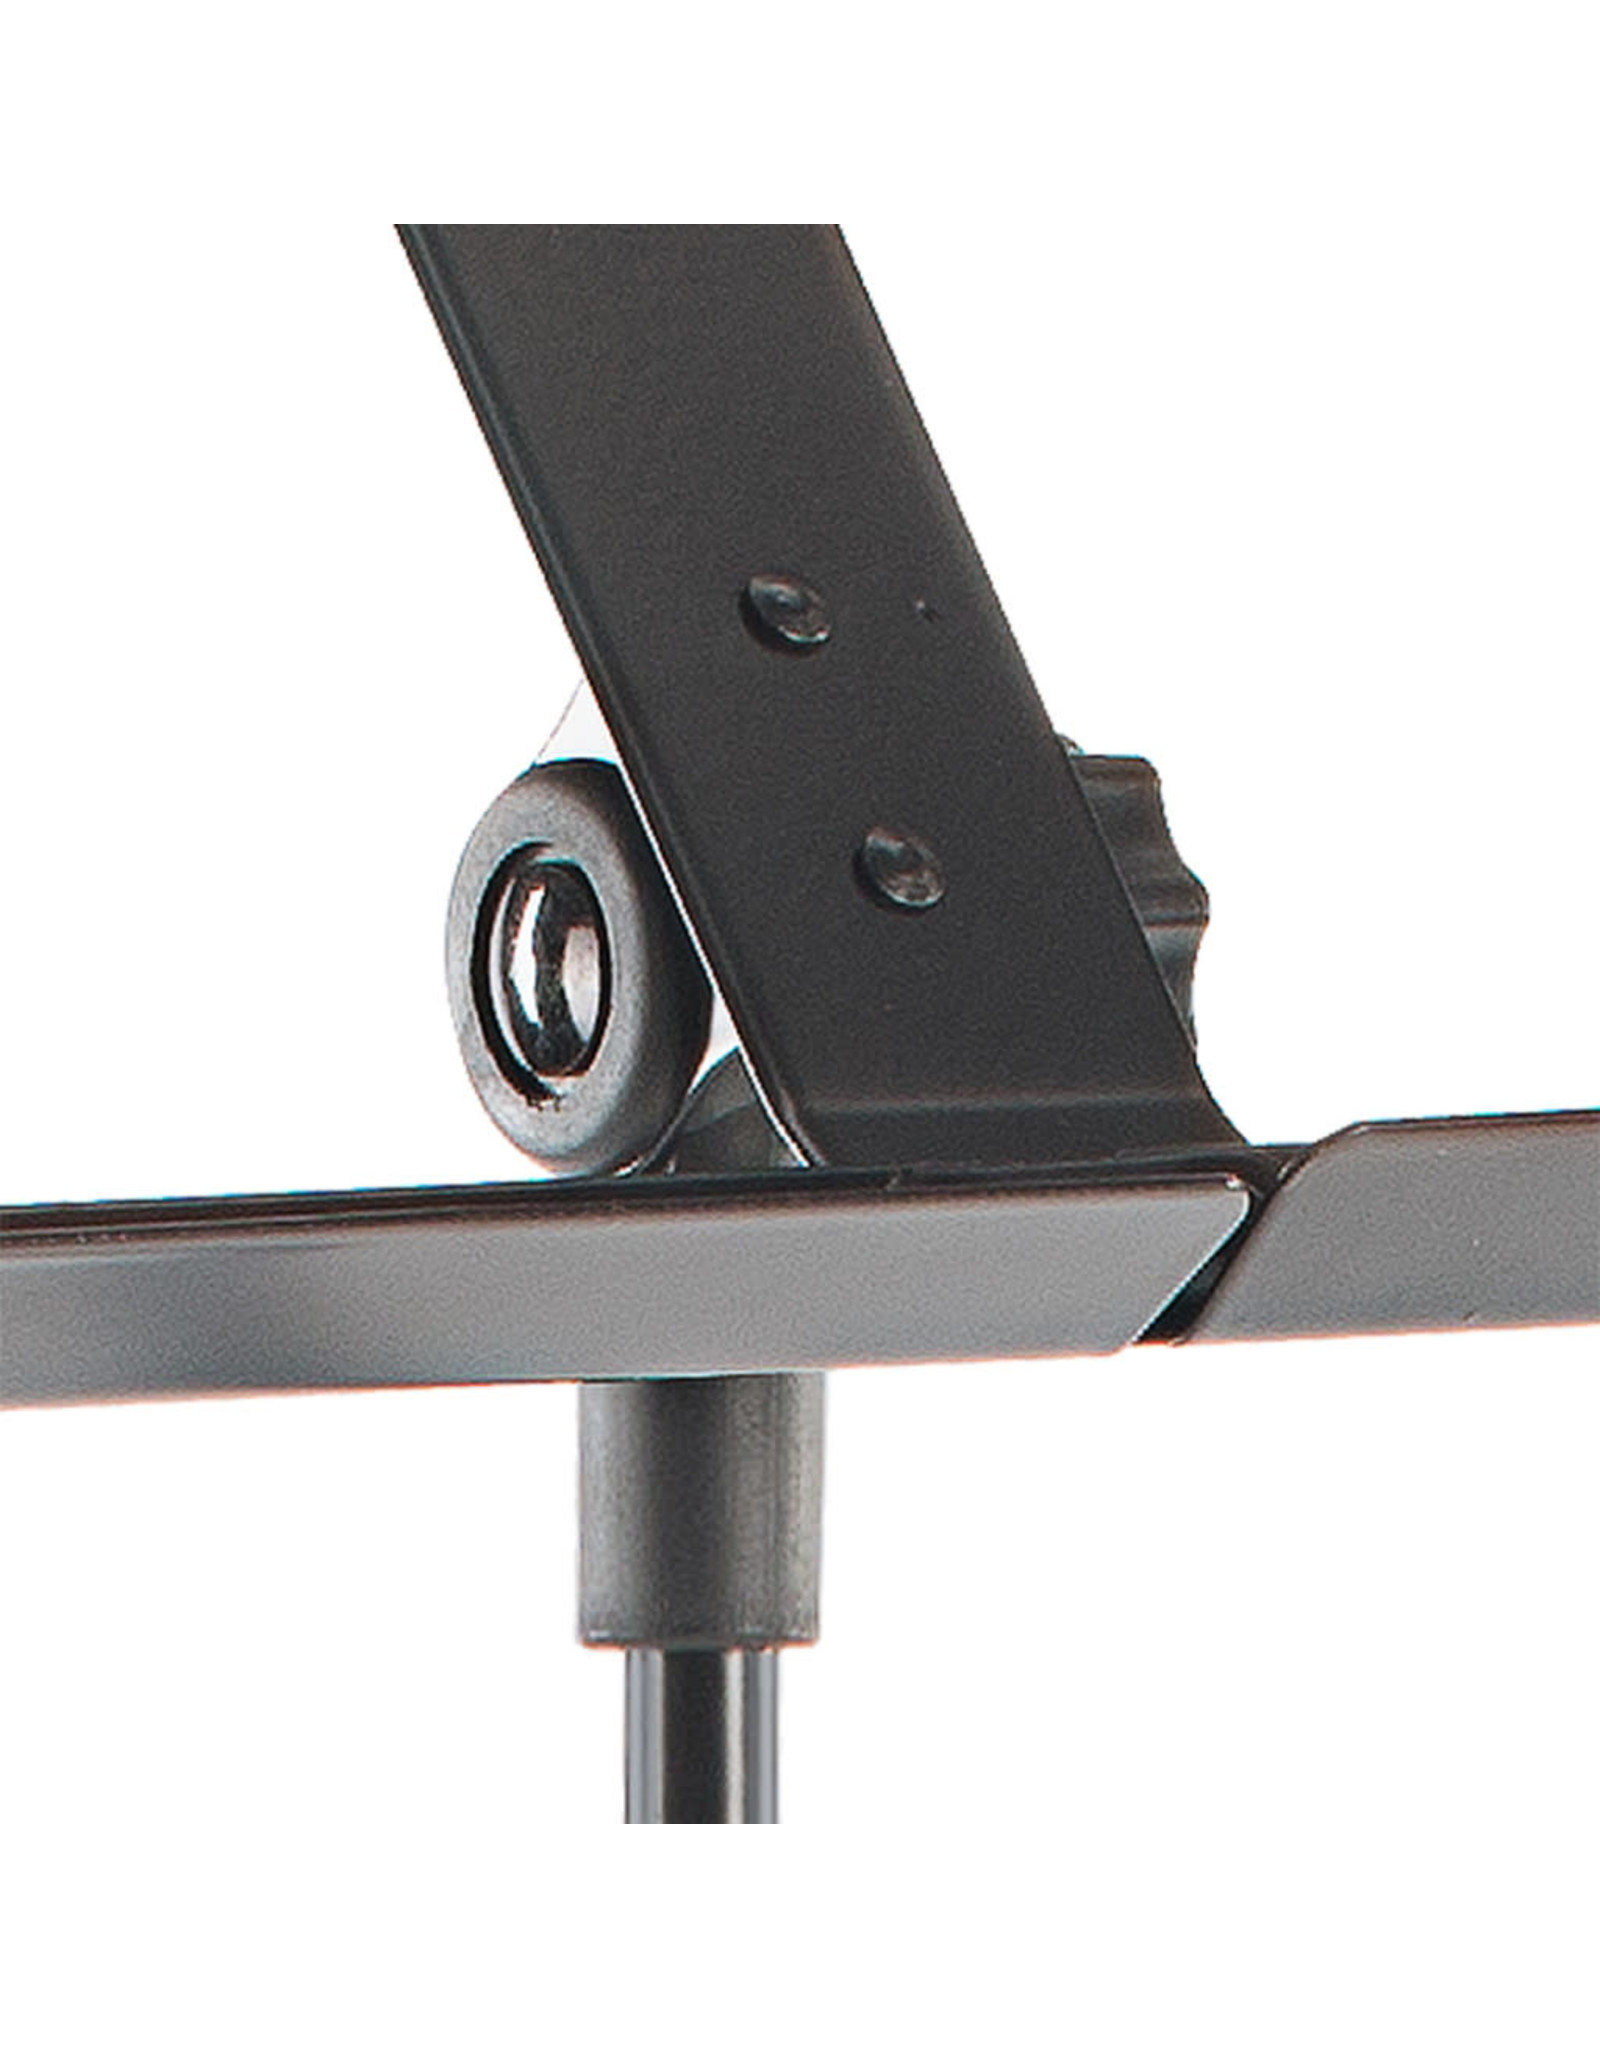 Stagg Stagg Economy Foldable Music Stand